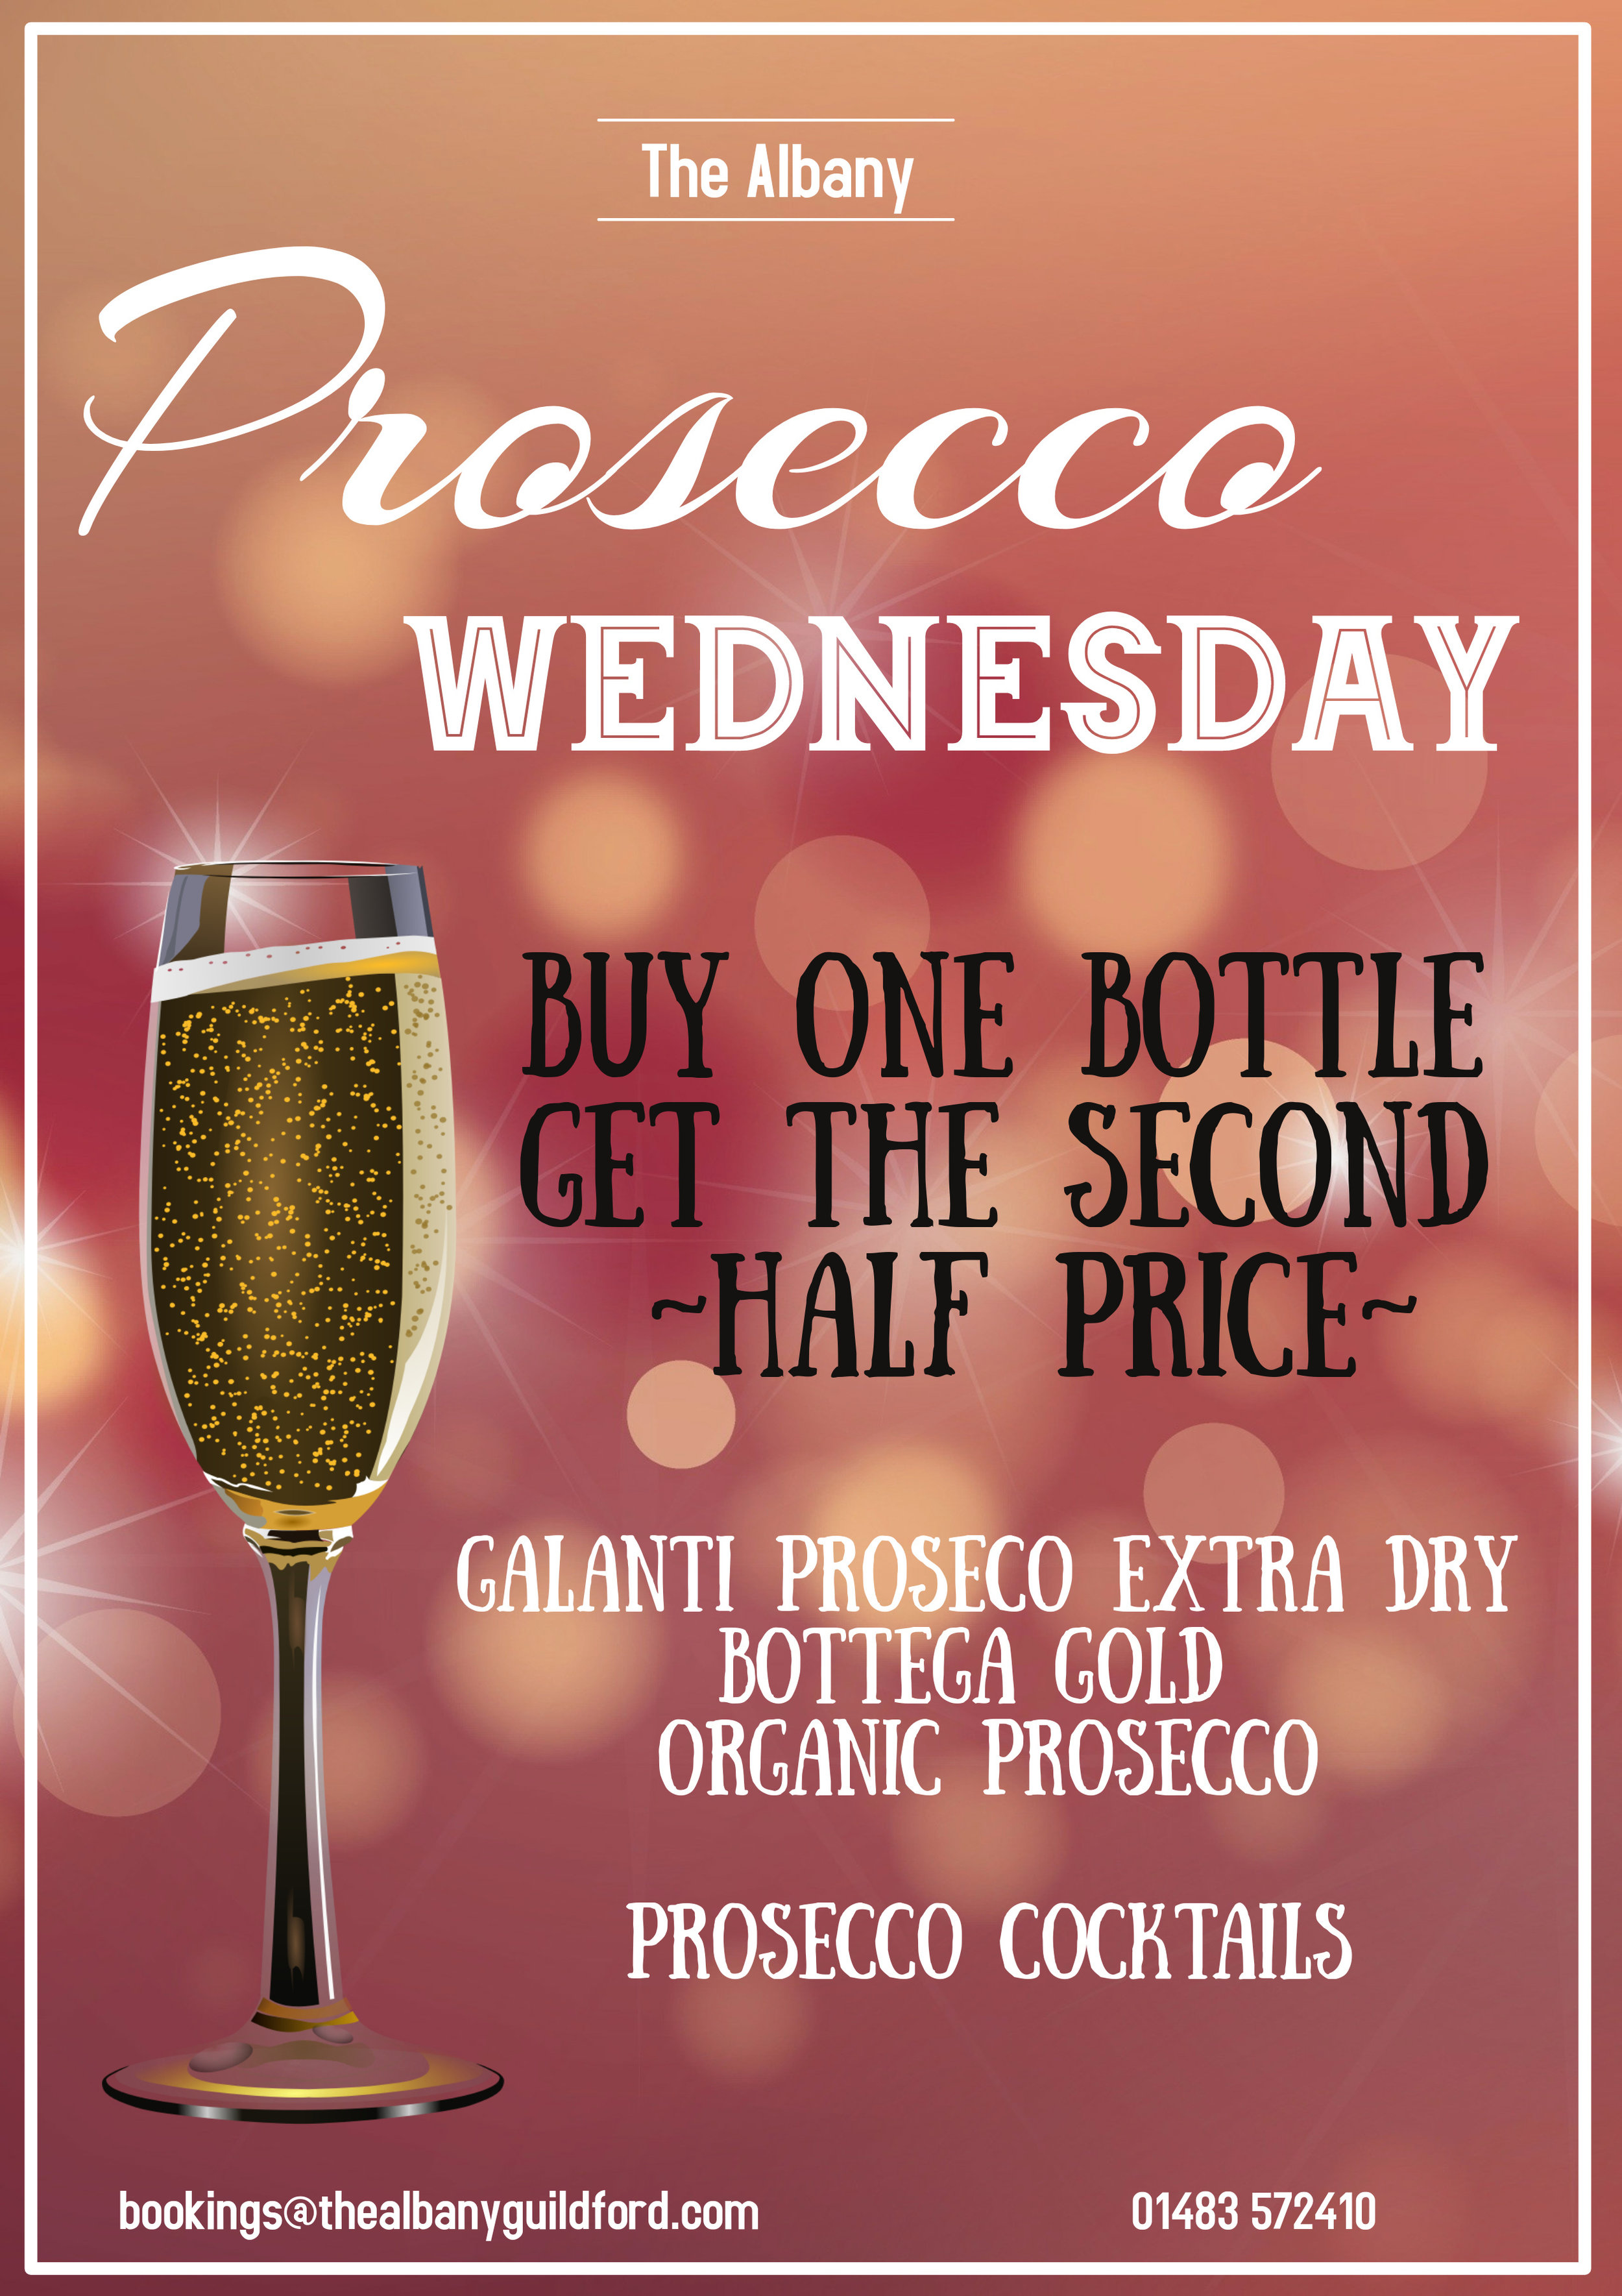 Prosecco O'Clock - Time to drink Prosecco and dance on the table!